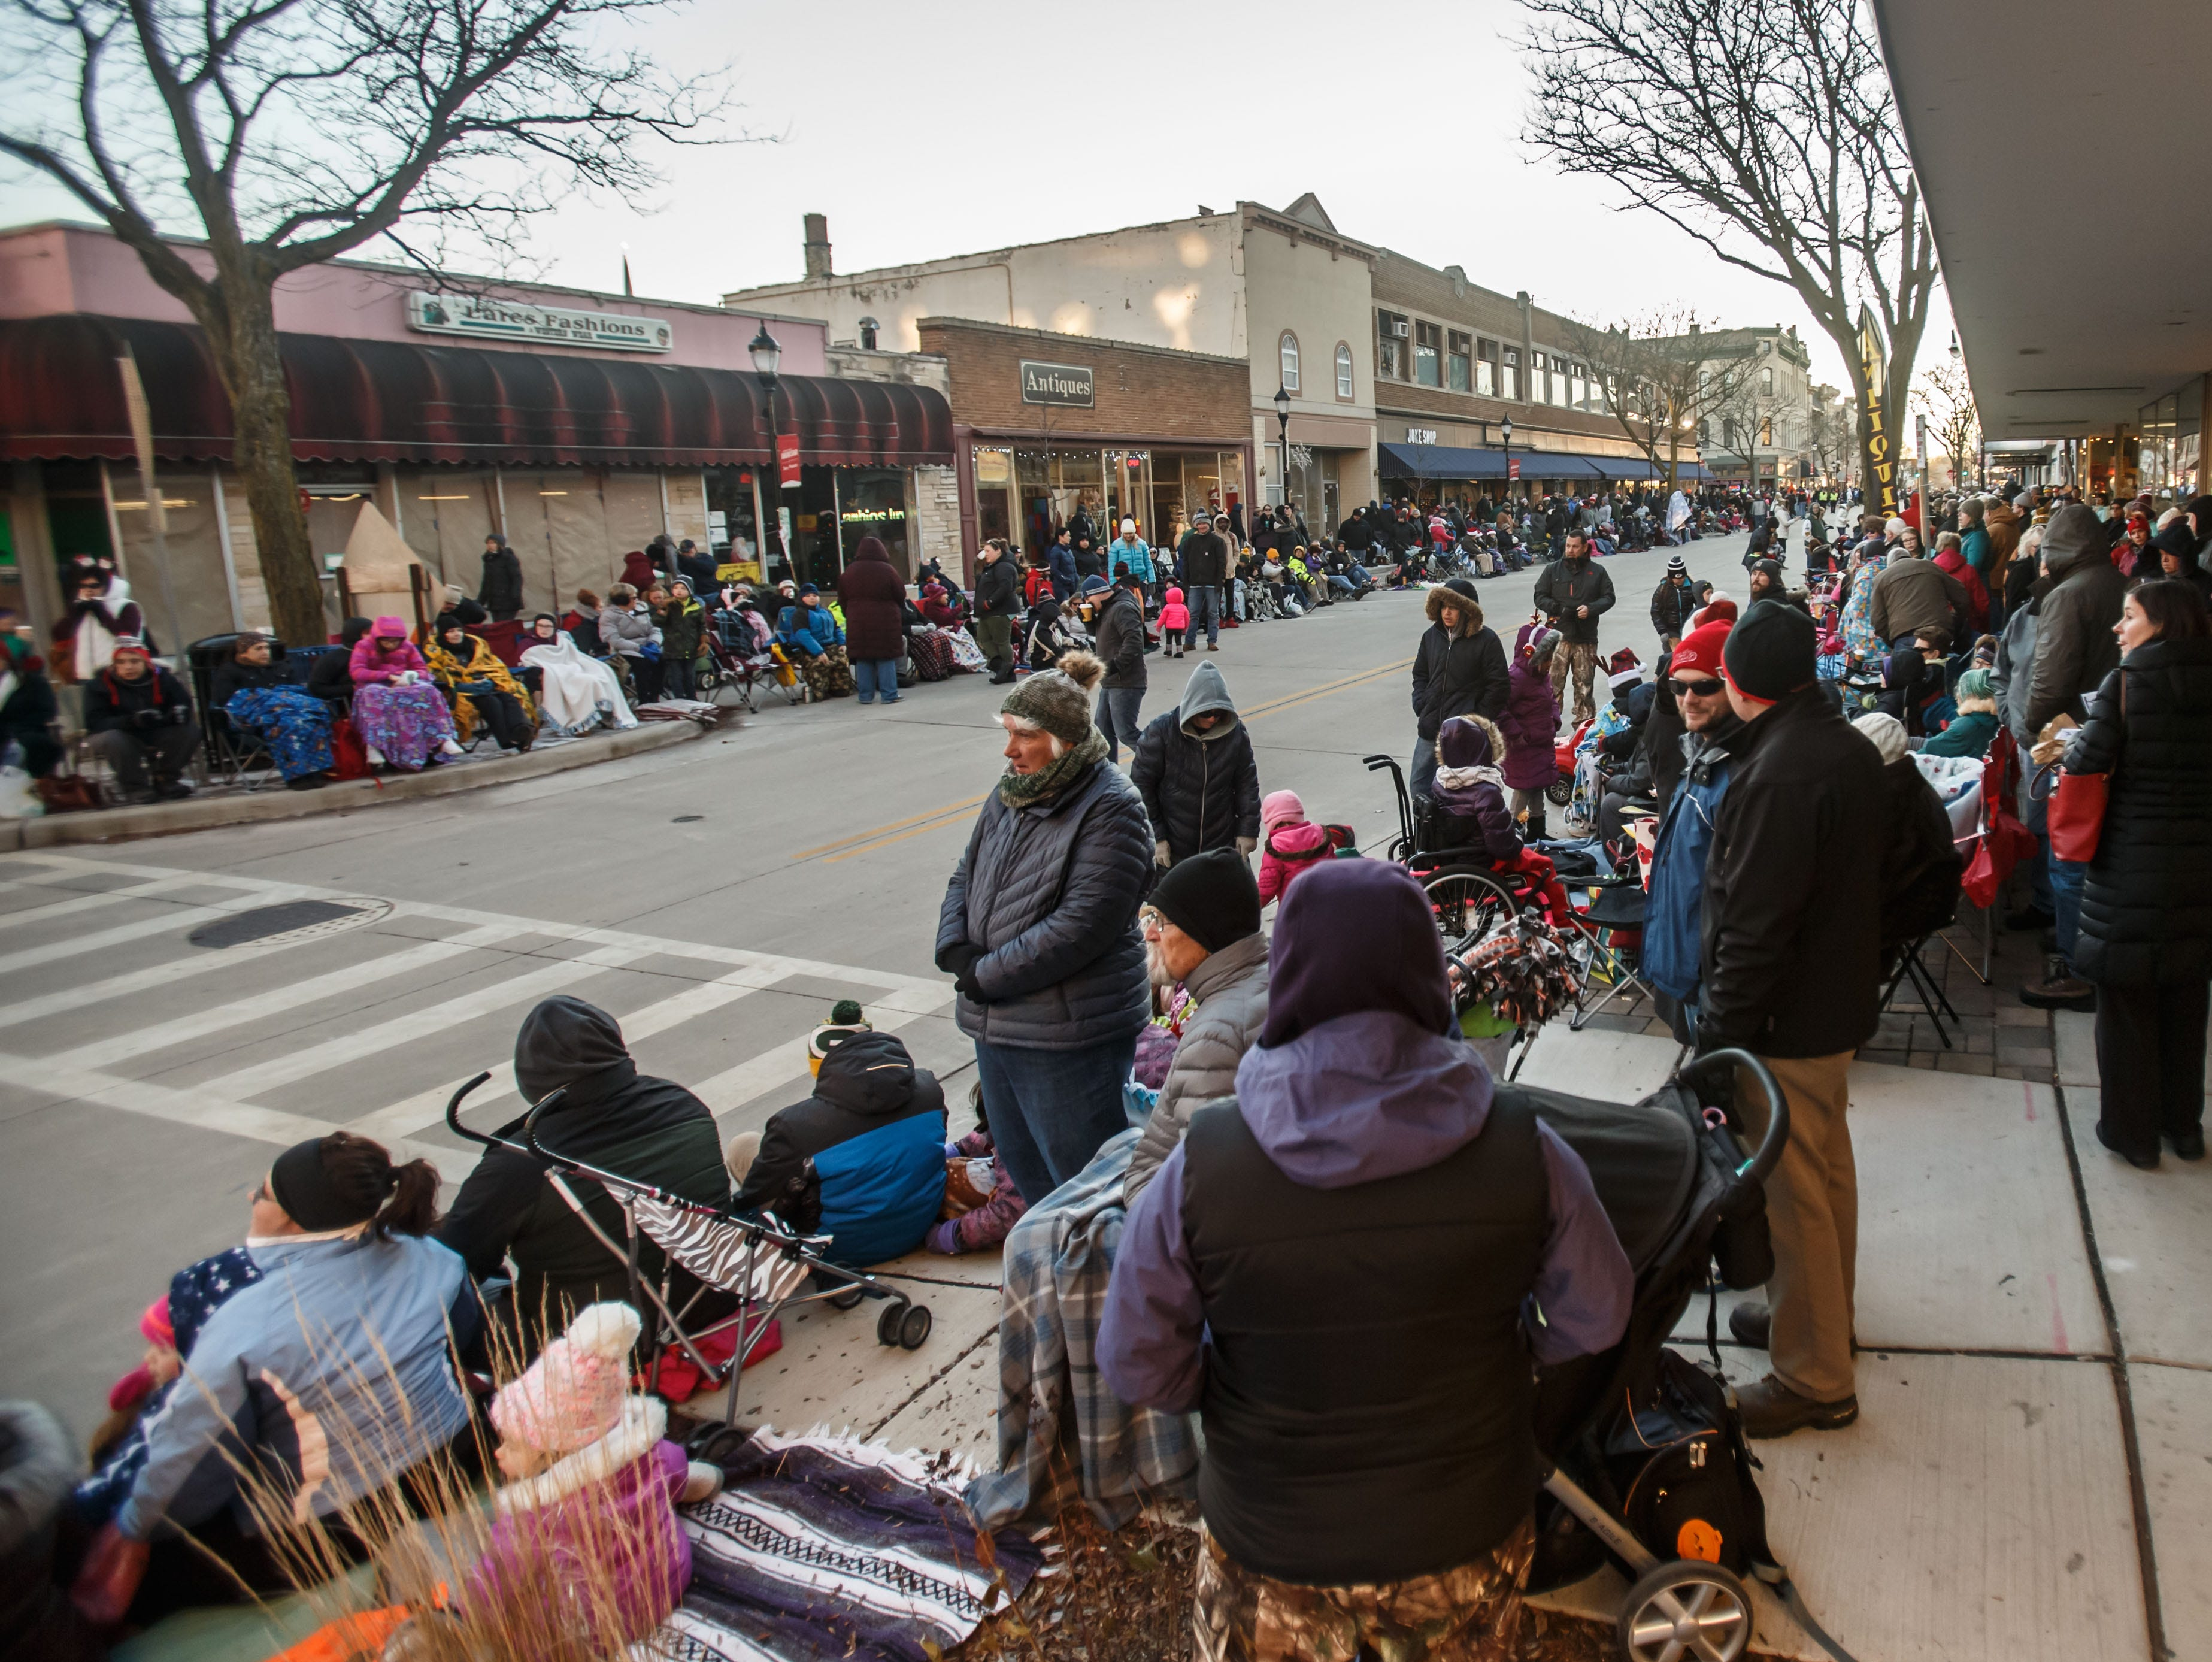 Parade enthusiasts flock to downtown Waukesha for the 56th annual Waukesha Christmas Parade through town on Sunday, Nov. 18, 2018.